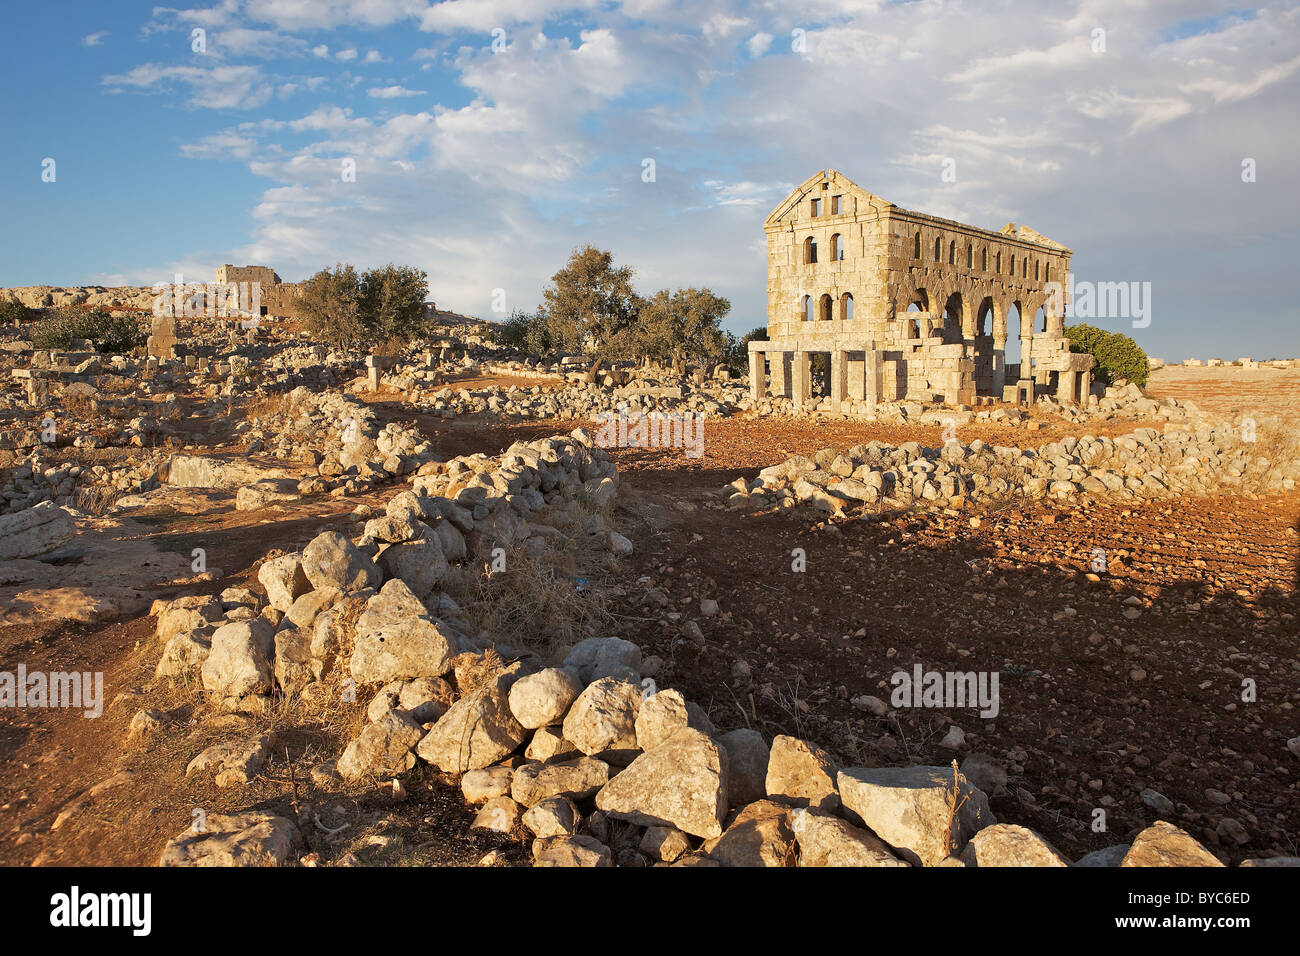 Deserted ruins of Kharrab Shams 'Forgotten City', north of Aleppo, Syria in evening sun - Stock Image